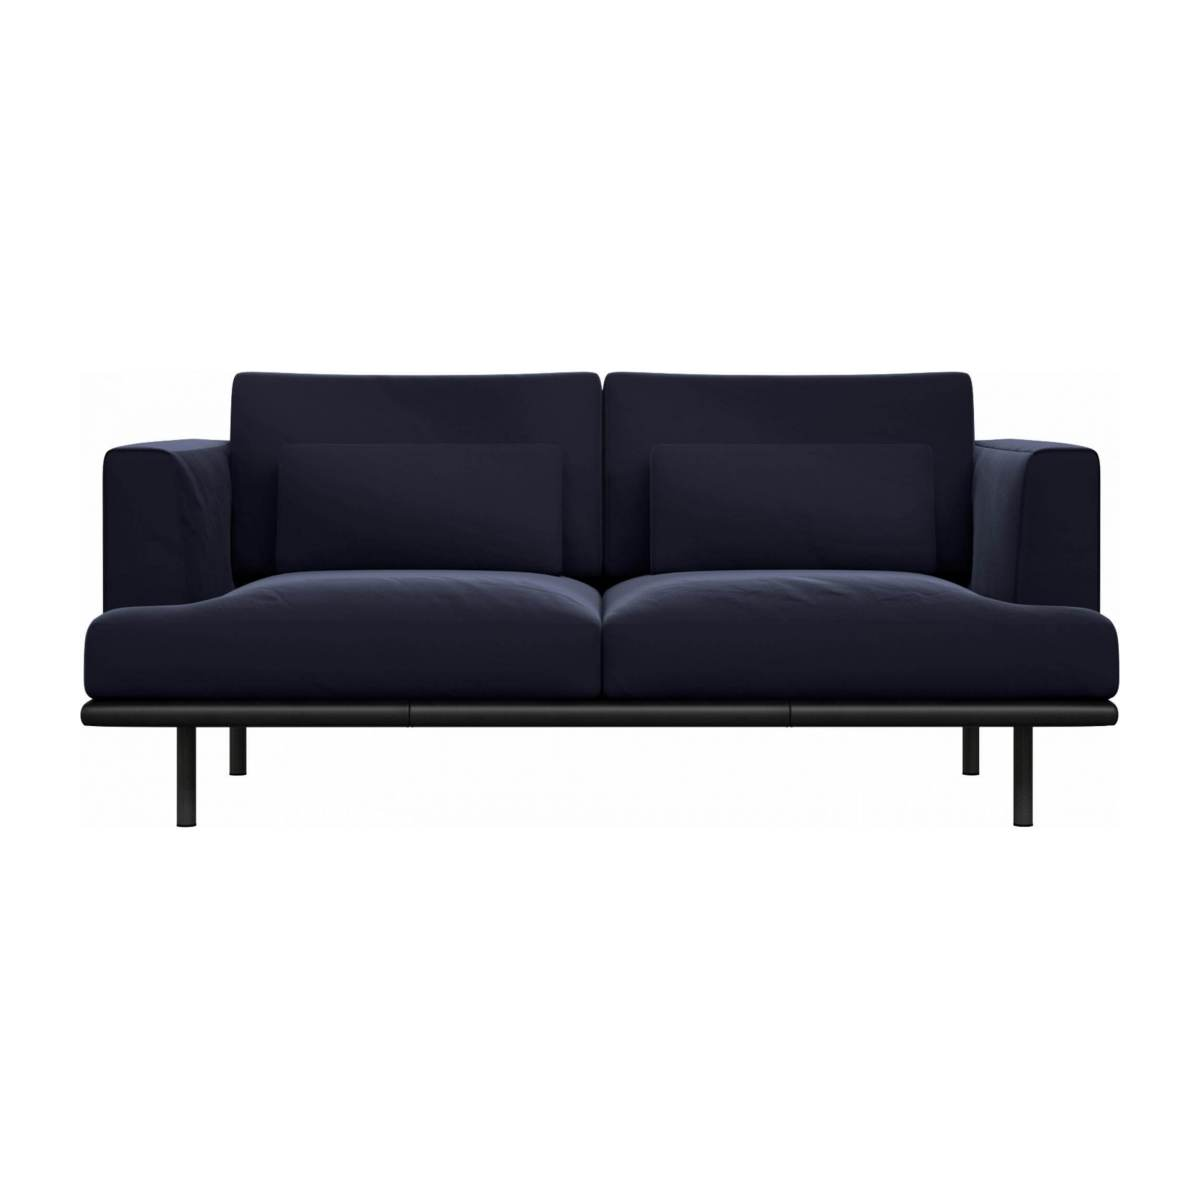 2 seater sofa in Super Velvet fabric, dark blue with base in black leather n°1